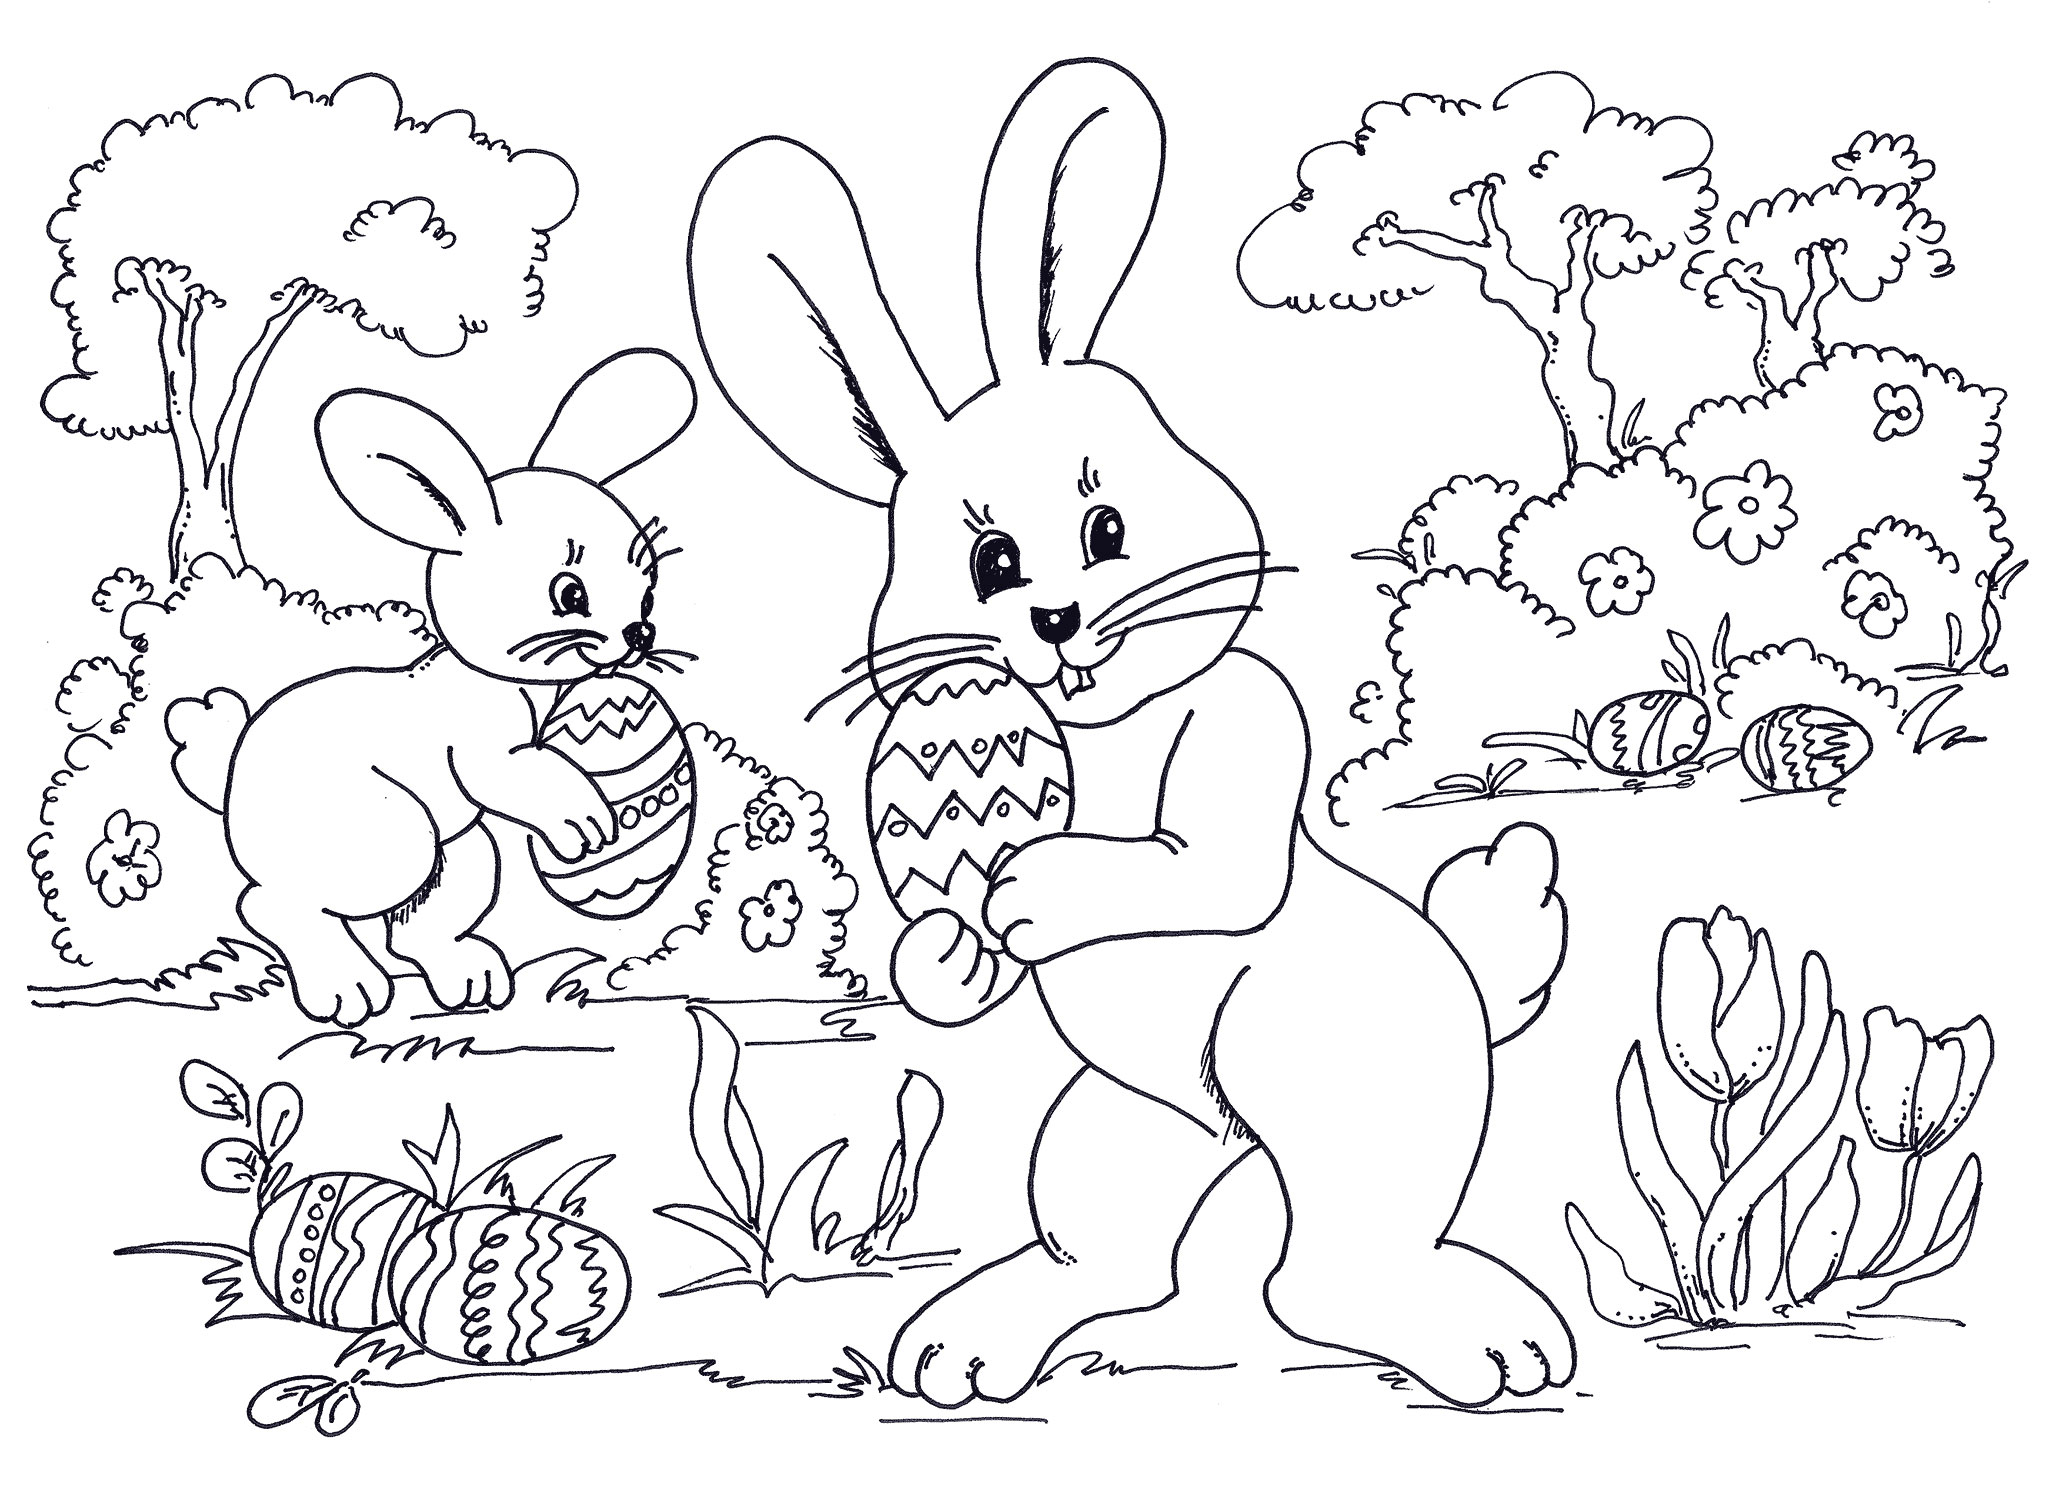 850x1074 Printable Easter Egg Coloring Pages For Kids Cool2bKids 2049x1500 Special Drawing Ideas Best And Awesome